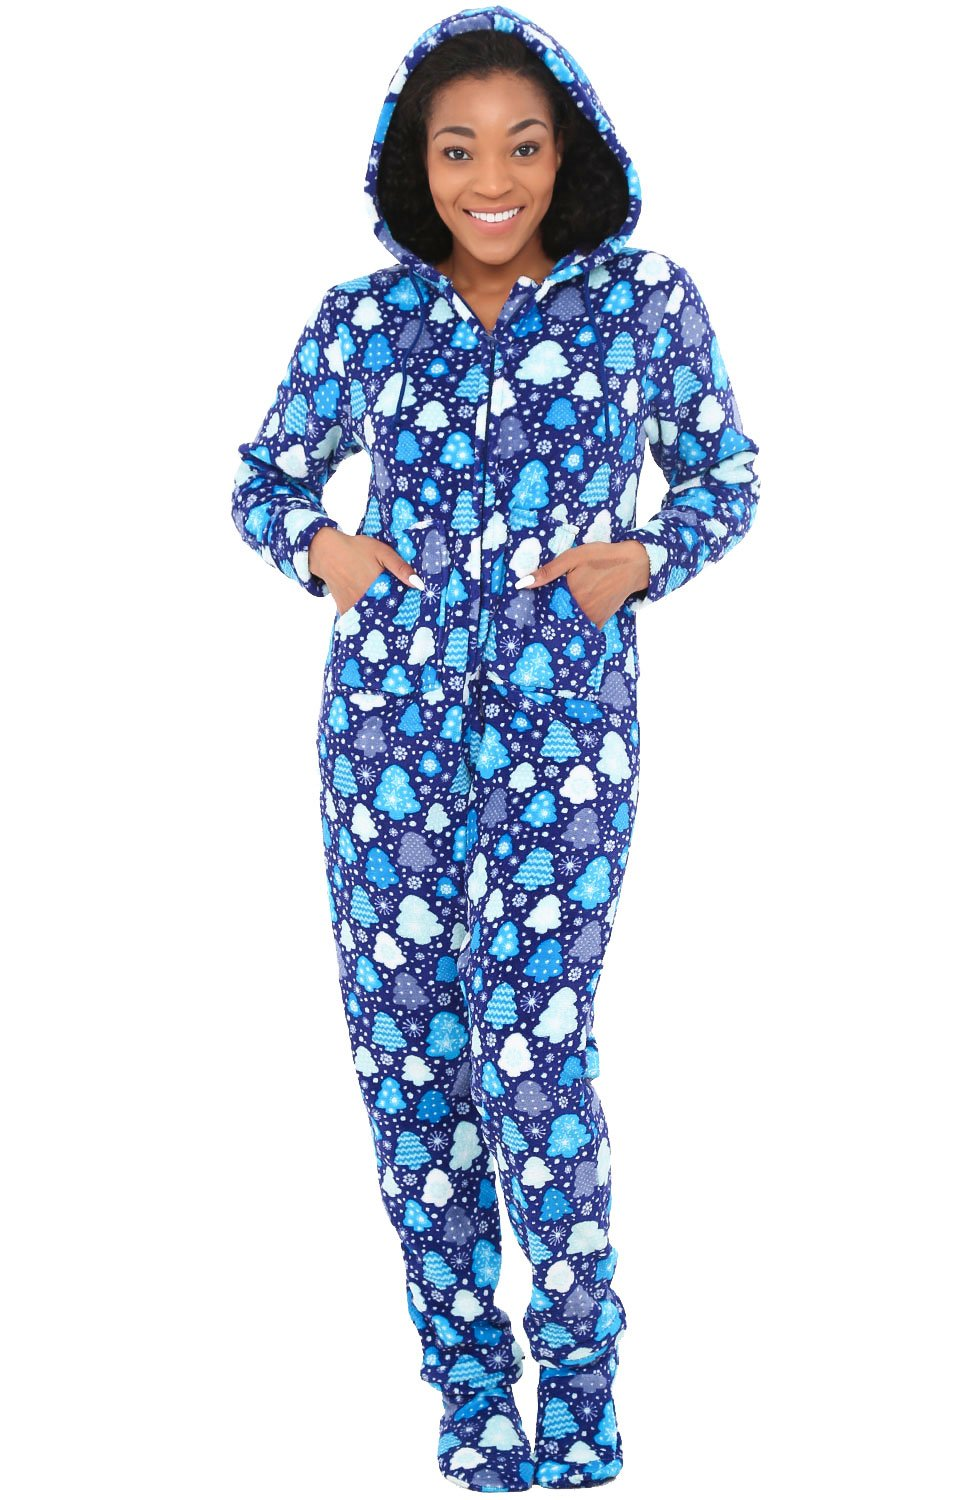 Alexander Del Rossa Womens Fleece Onesie, Hooded Footed Jumpsuit Pajamas, XL Blue Christmas Tree Snowflakes (A0322Q66XL)